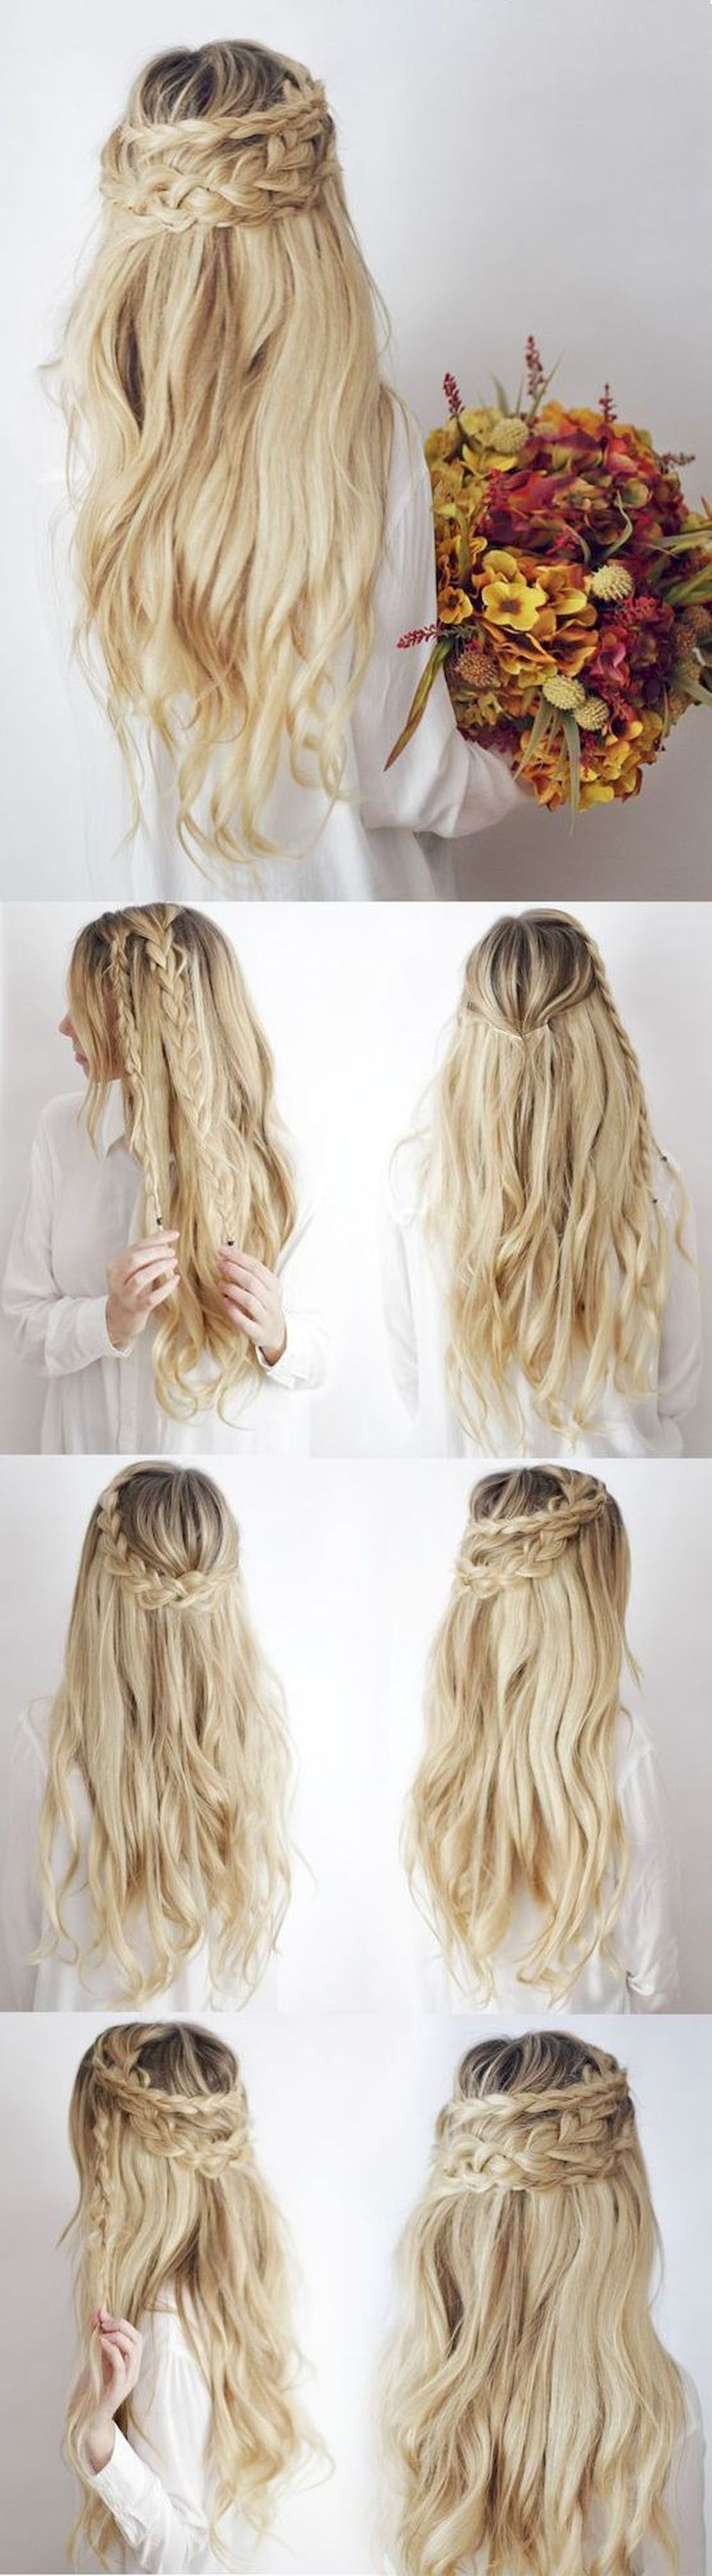 99+ Simple Wedding Hairstyles for Every Length   Simple wedding ...